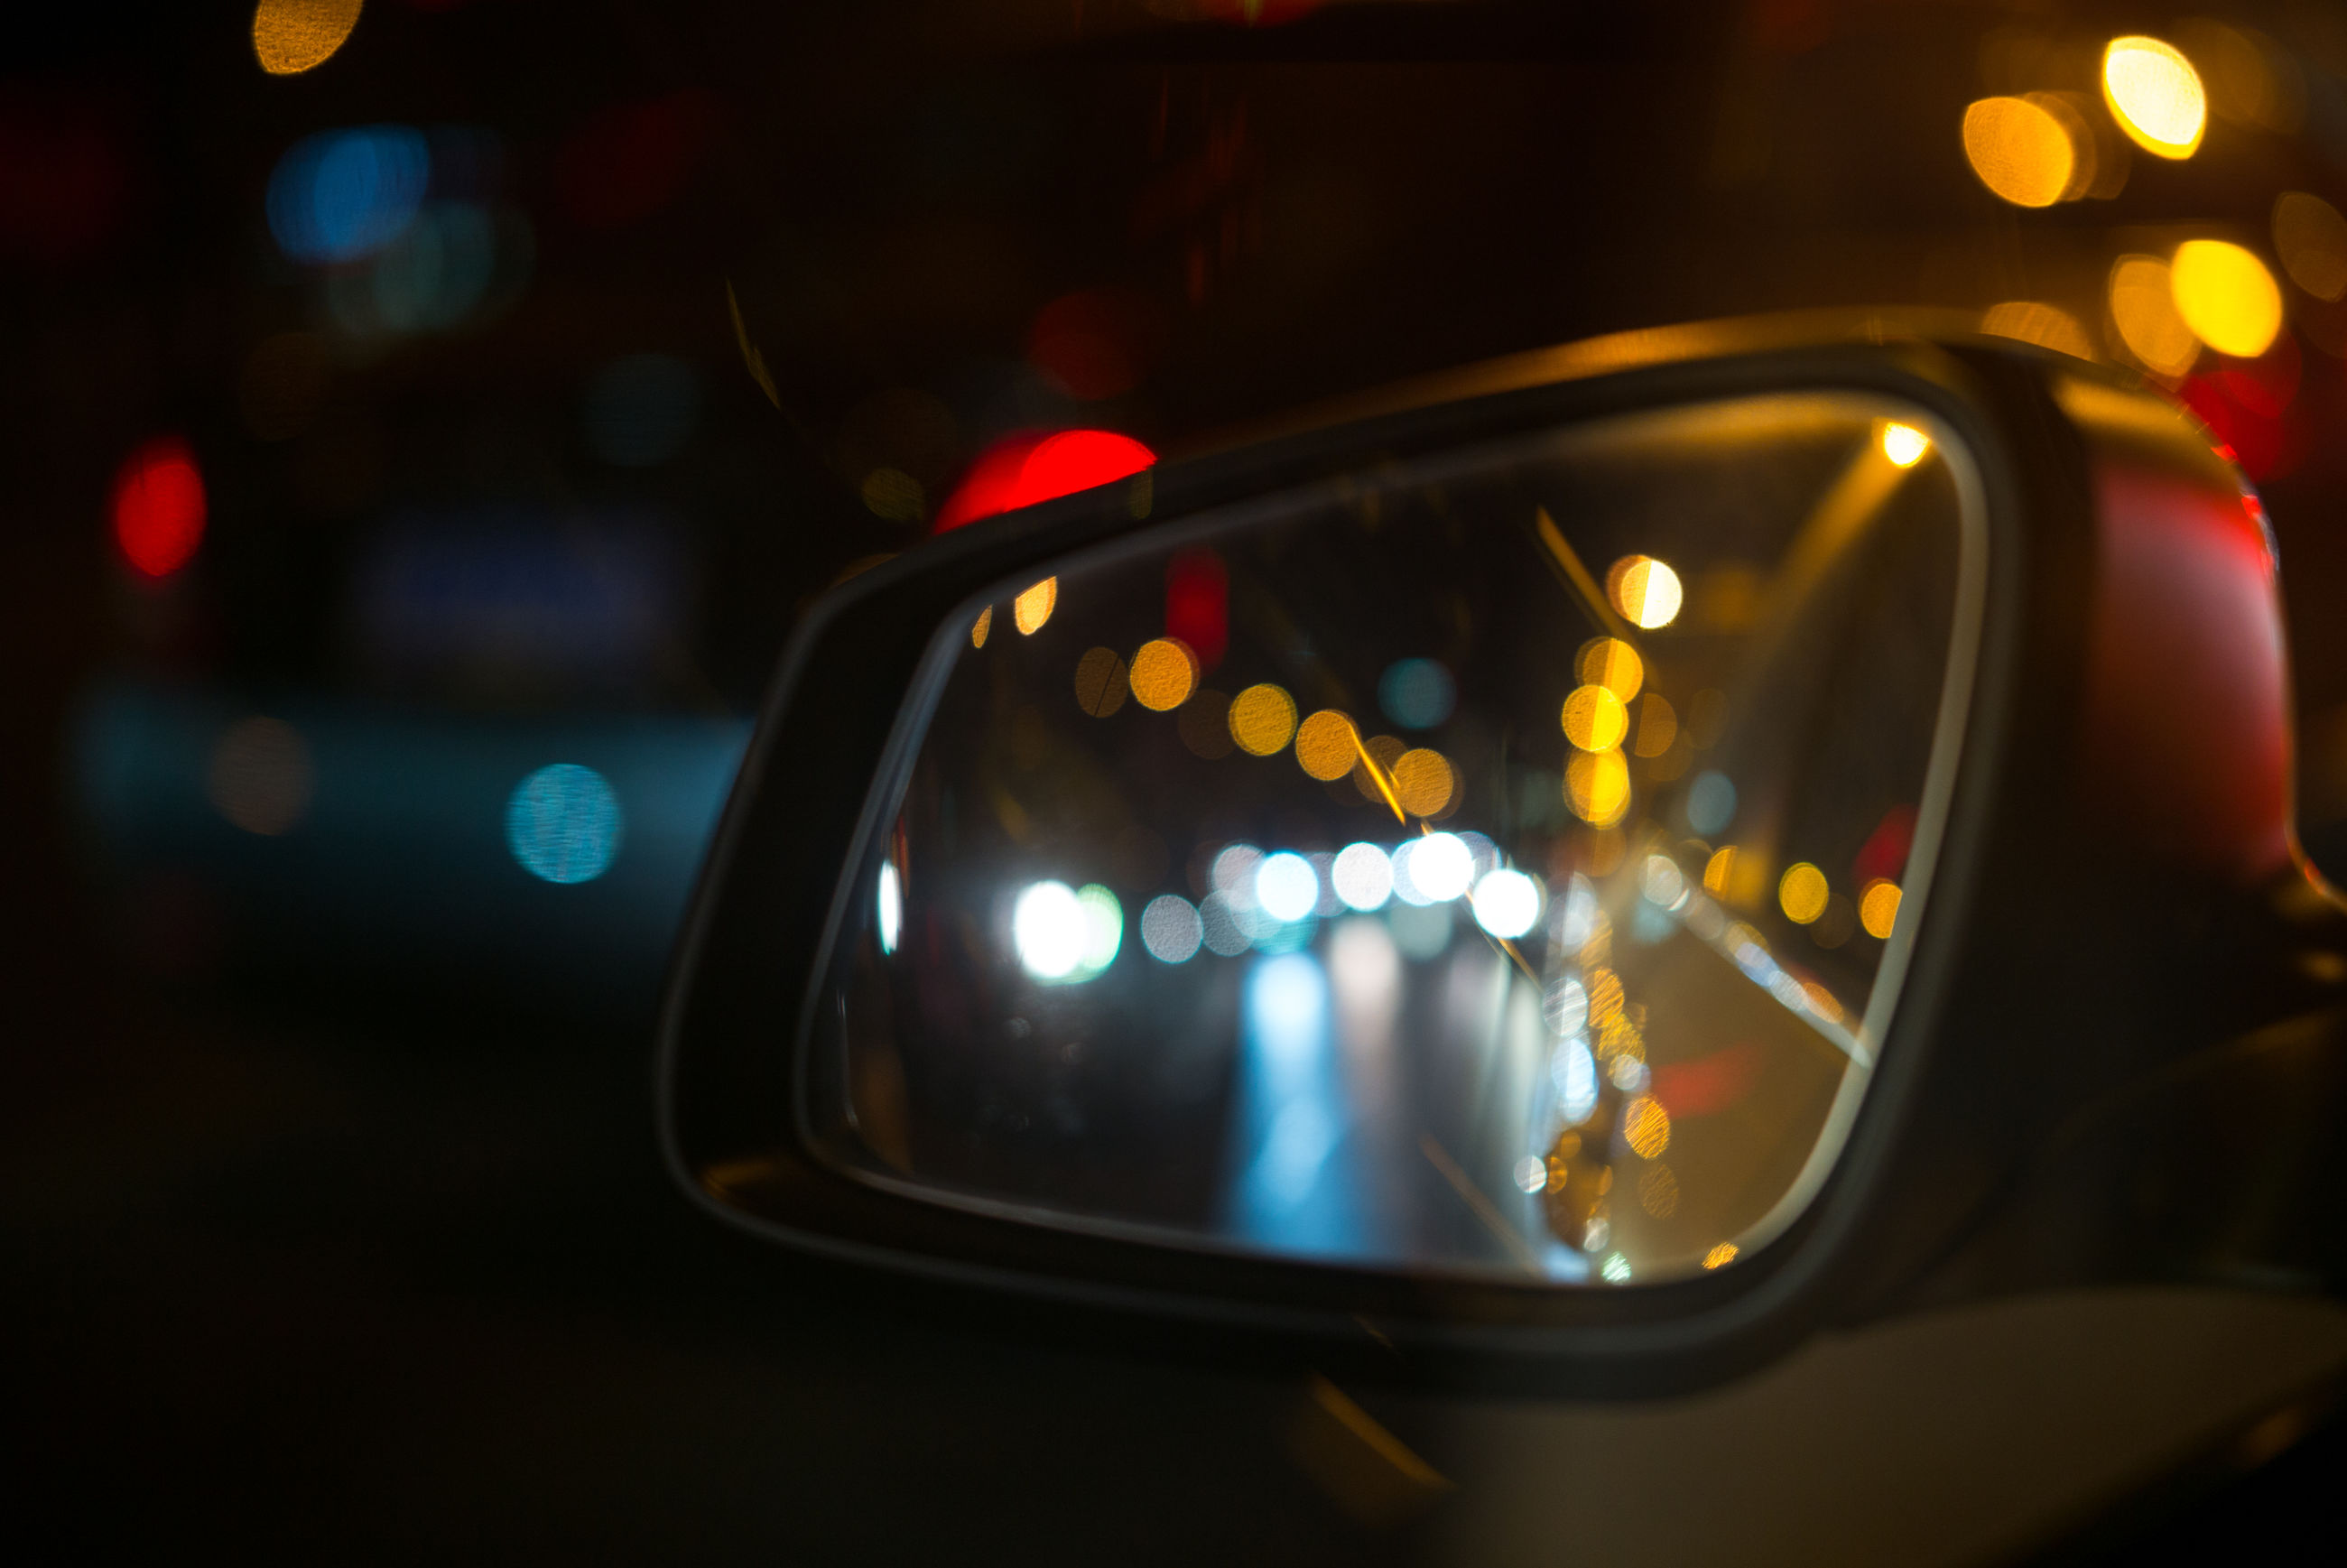 transportation, land vehicle, mode of transport, car, illuminated, night, glass - material, close-up, vehicle interior, transparent, reflection, headlight, car interior, side-view mirror, part of, street, blurred motion, travel, speed, on the move